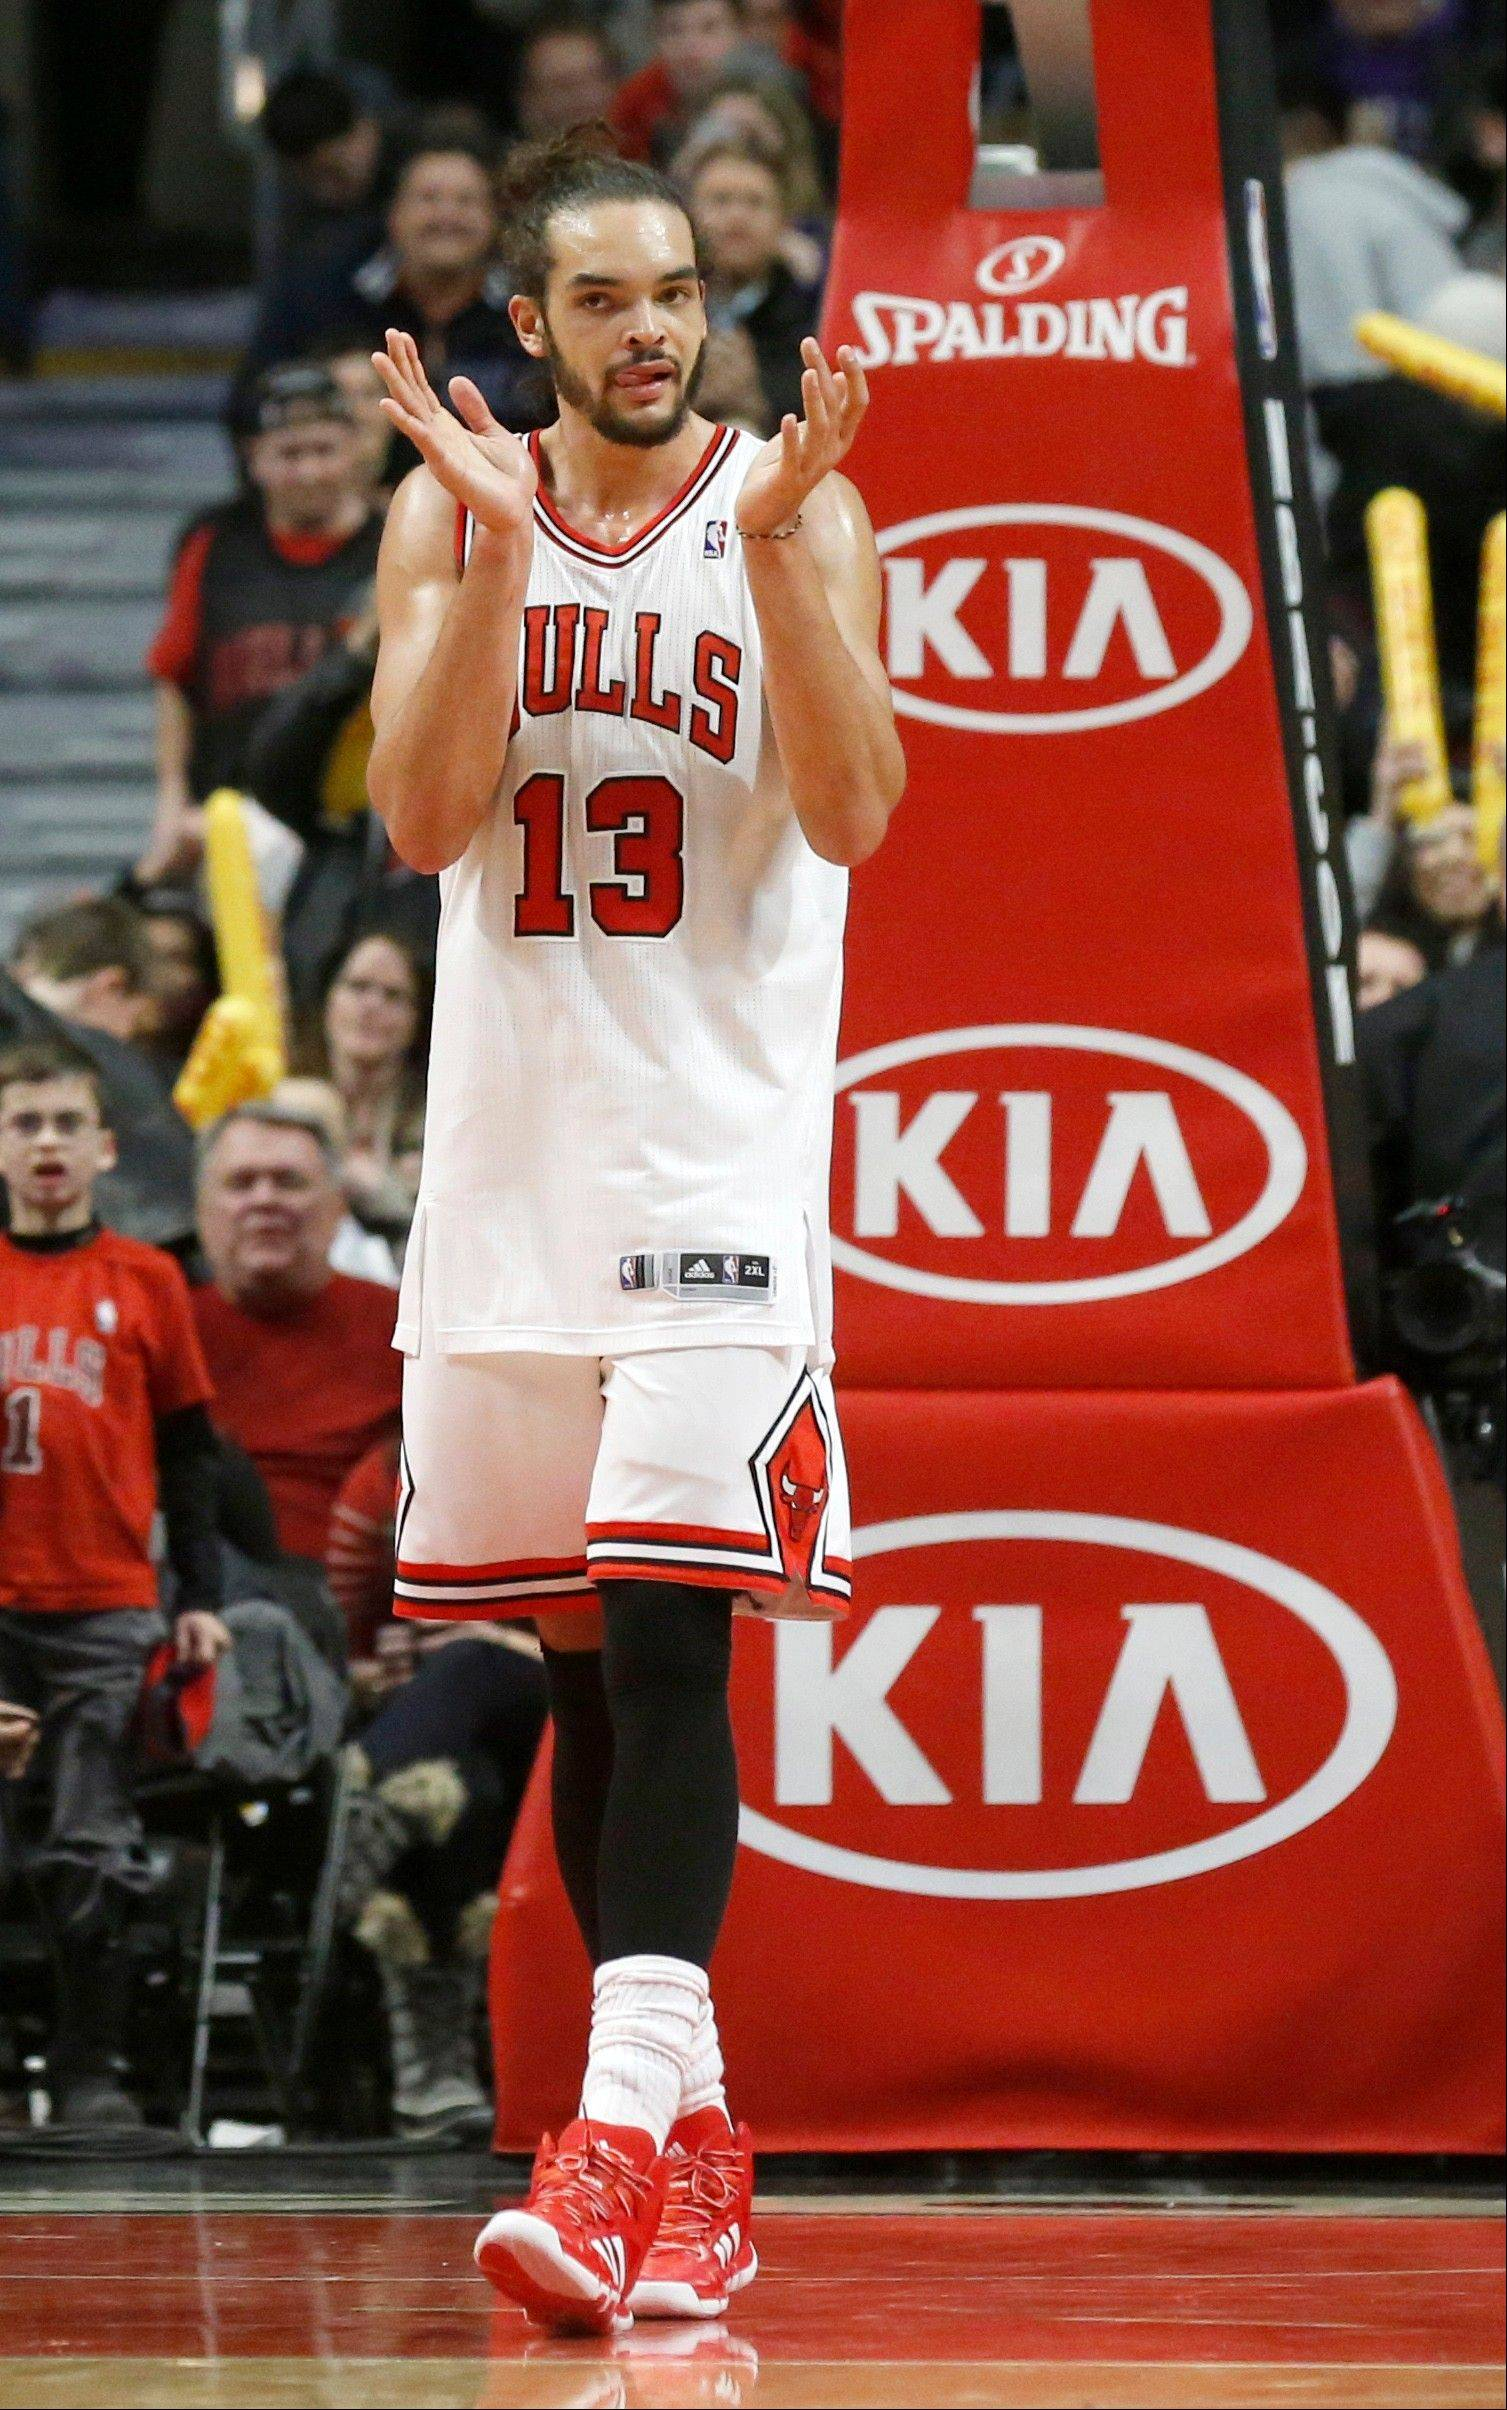 Chicago Bulls center Joakim Noah applauds his teammates during the second half of an NBA basketball game against the Boston Celtics, Thursday, Jan. 2, 2014, in Chicago. The Bulls won 94-82. (AP Photo/Charles Rex Arbogast)